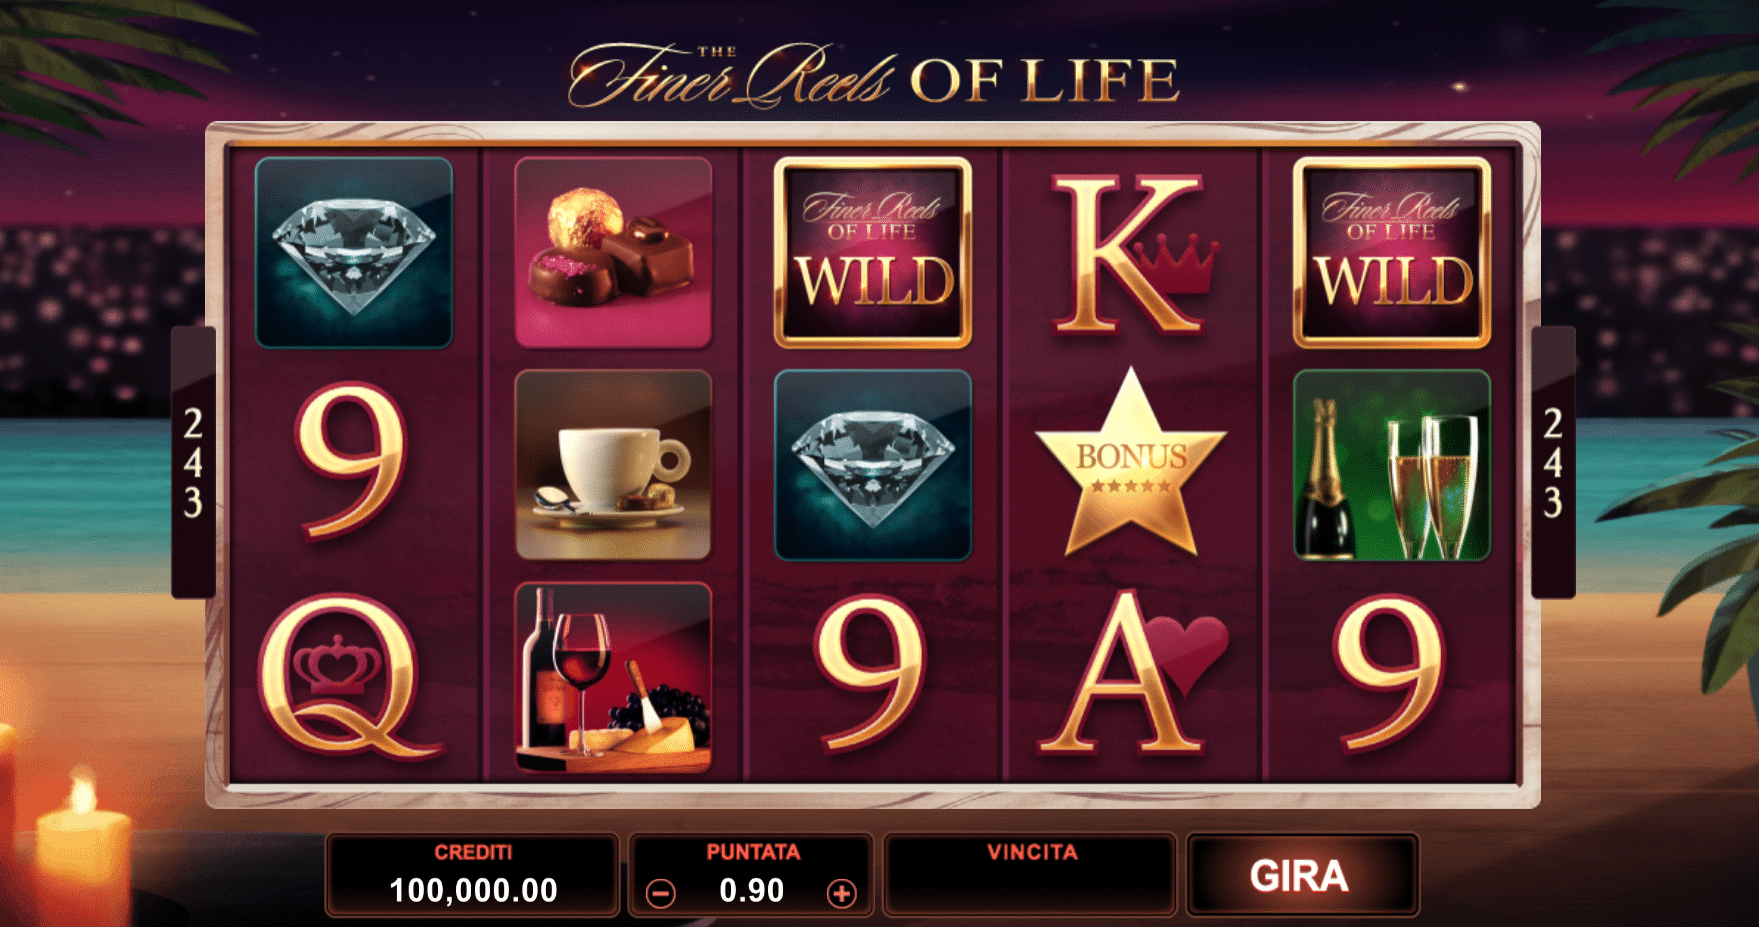 Slot The Finer Reels of Life